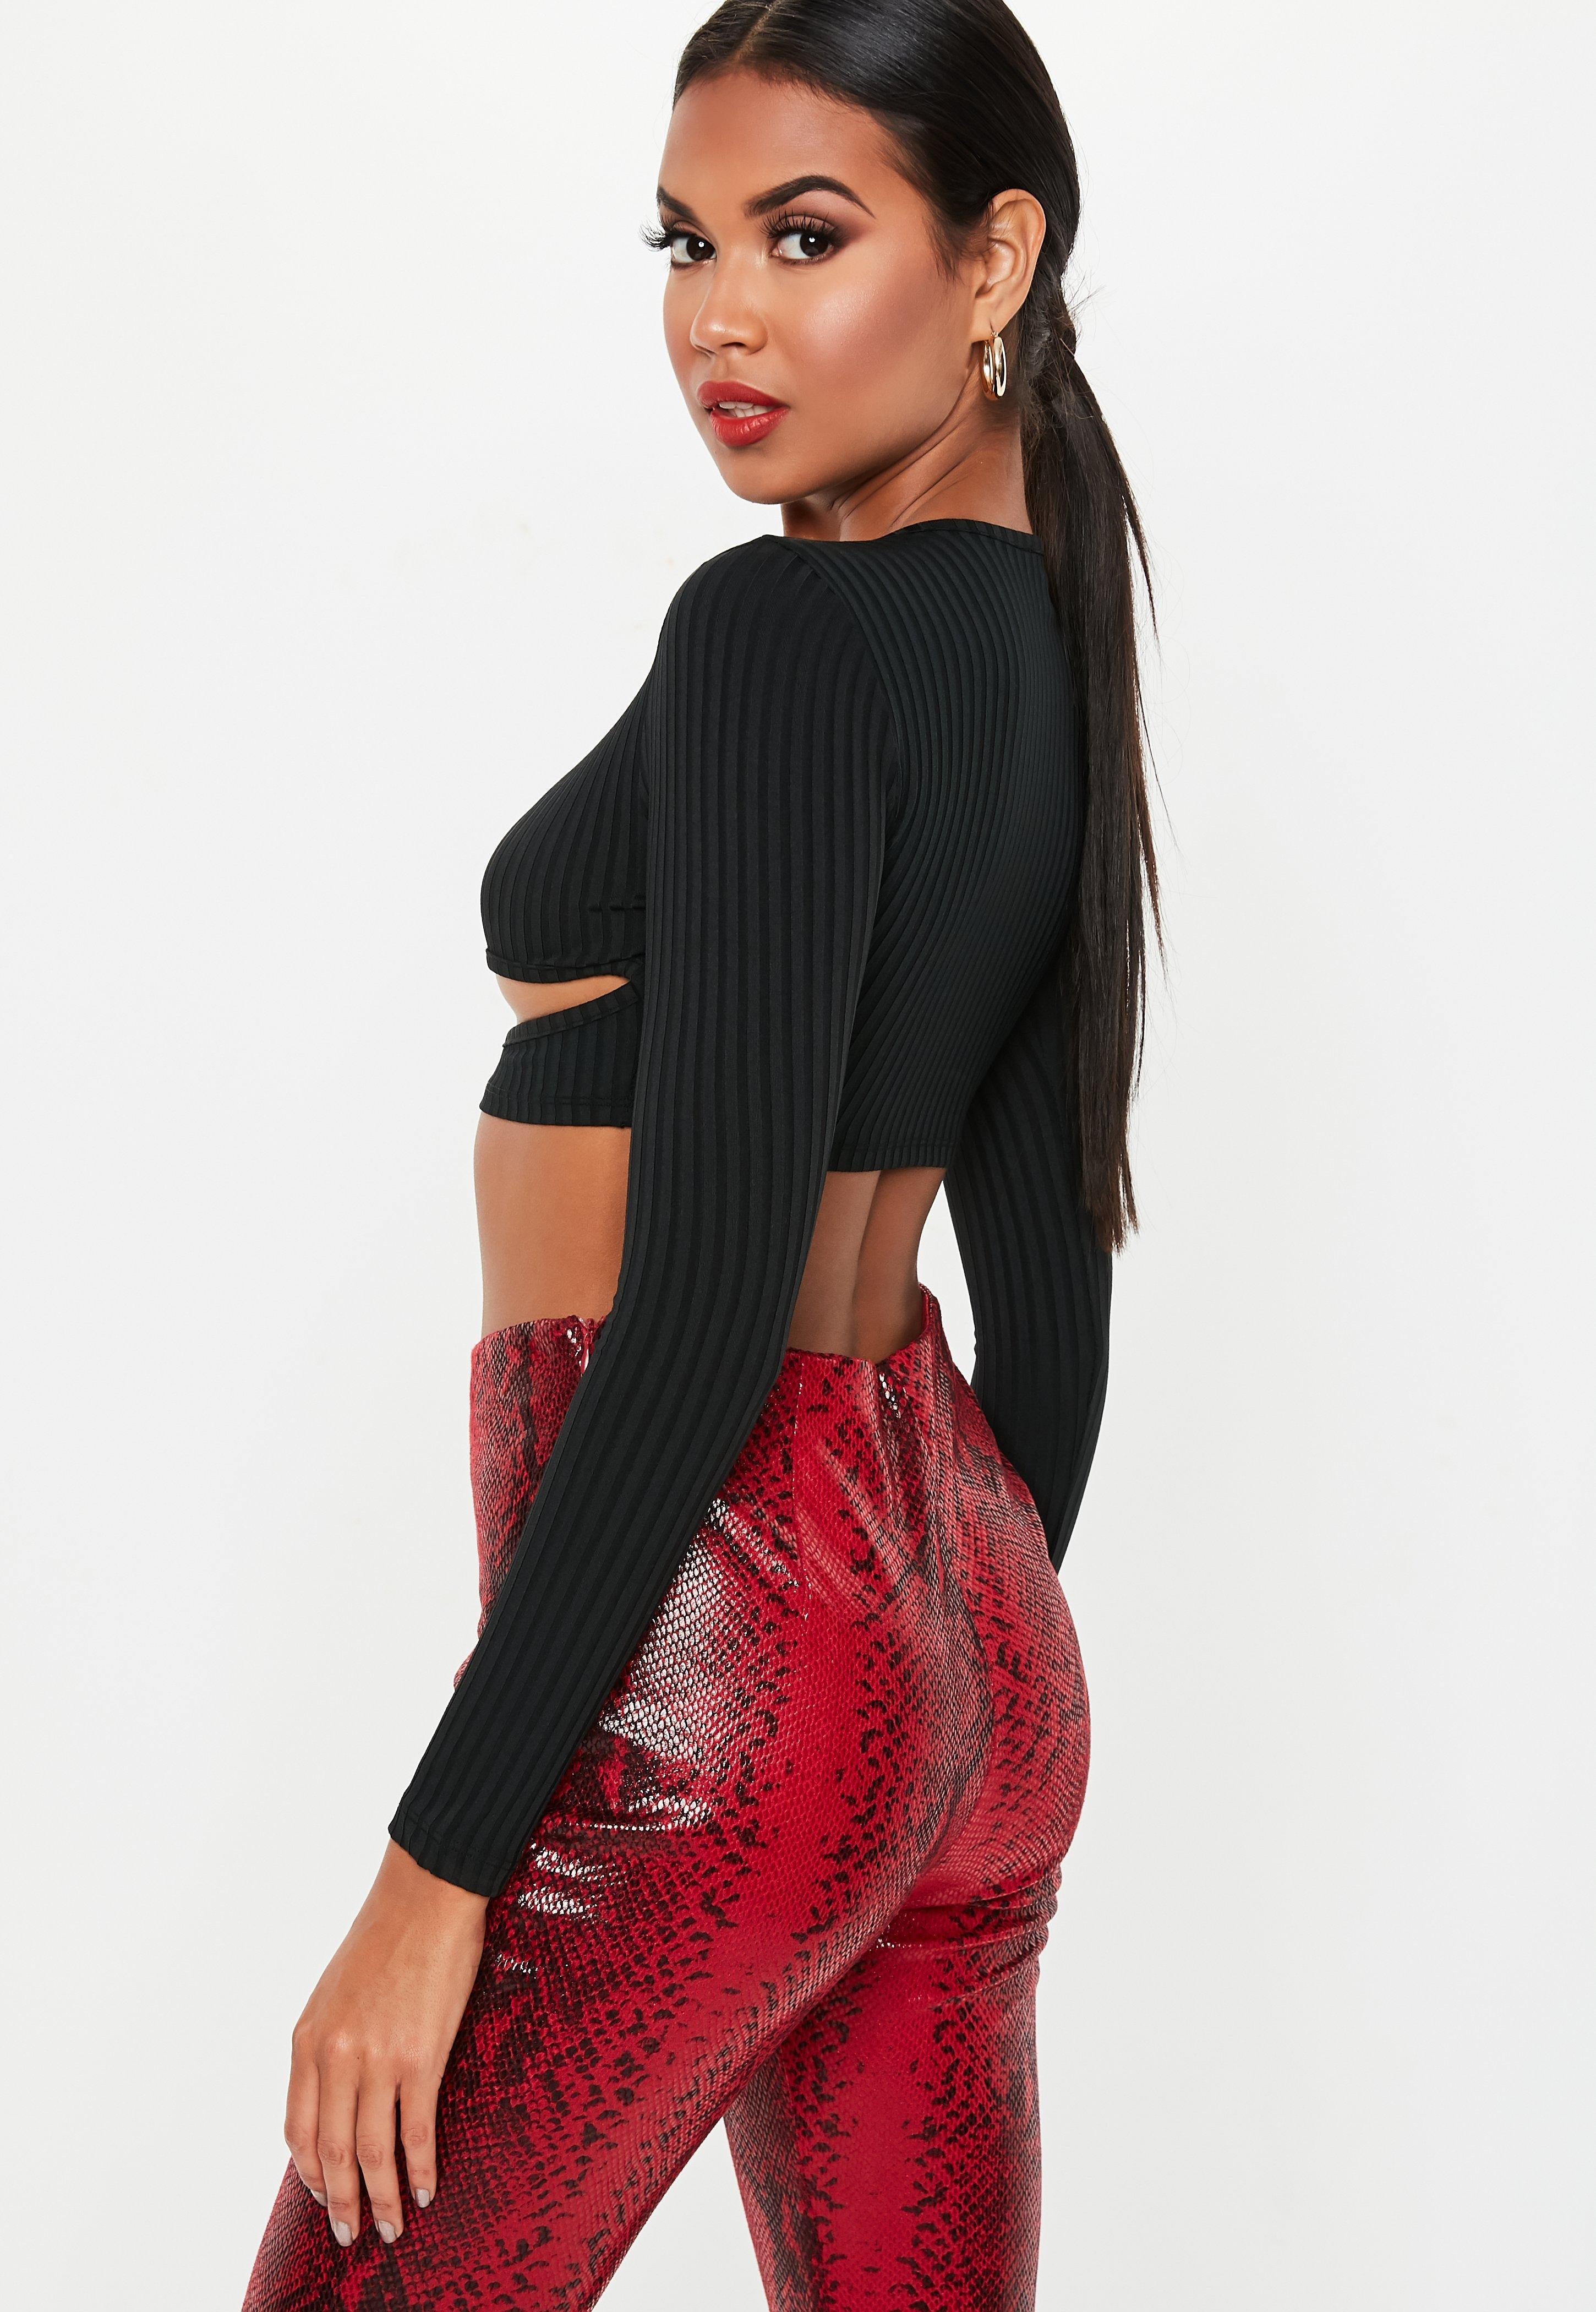 b9206d6c072690 Missguided - Petite Black Ribbed Cut Out Long Sleeve Crop Top - Lyst. View  fullscreen